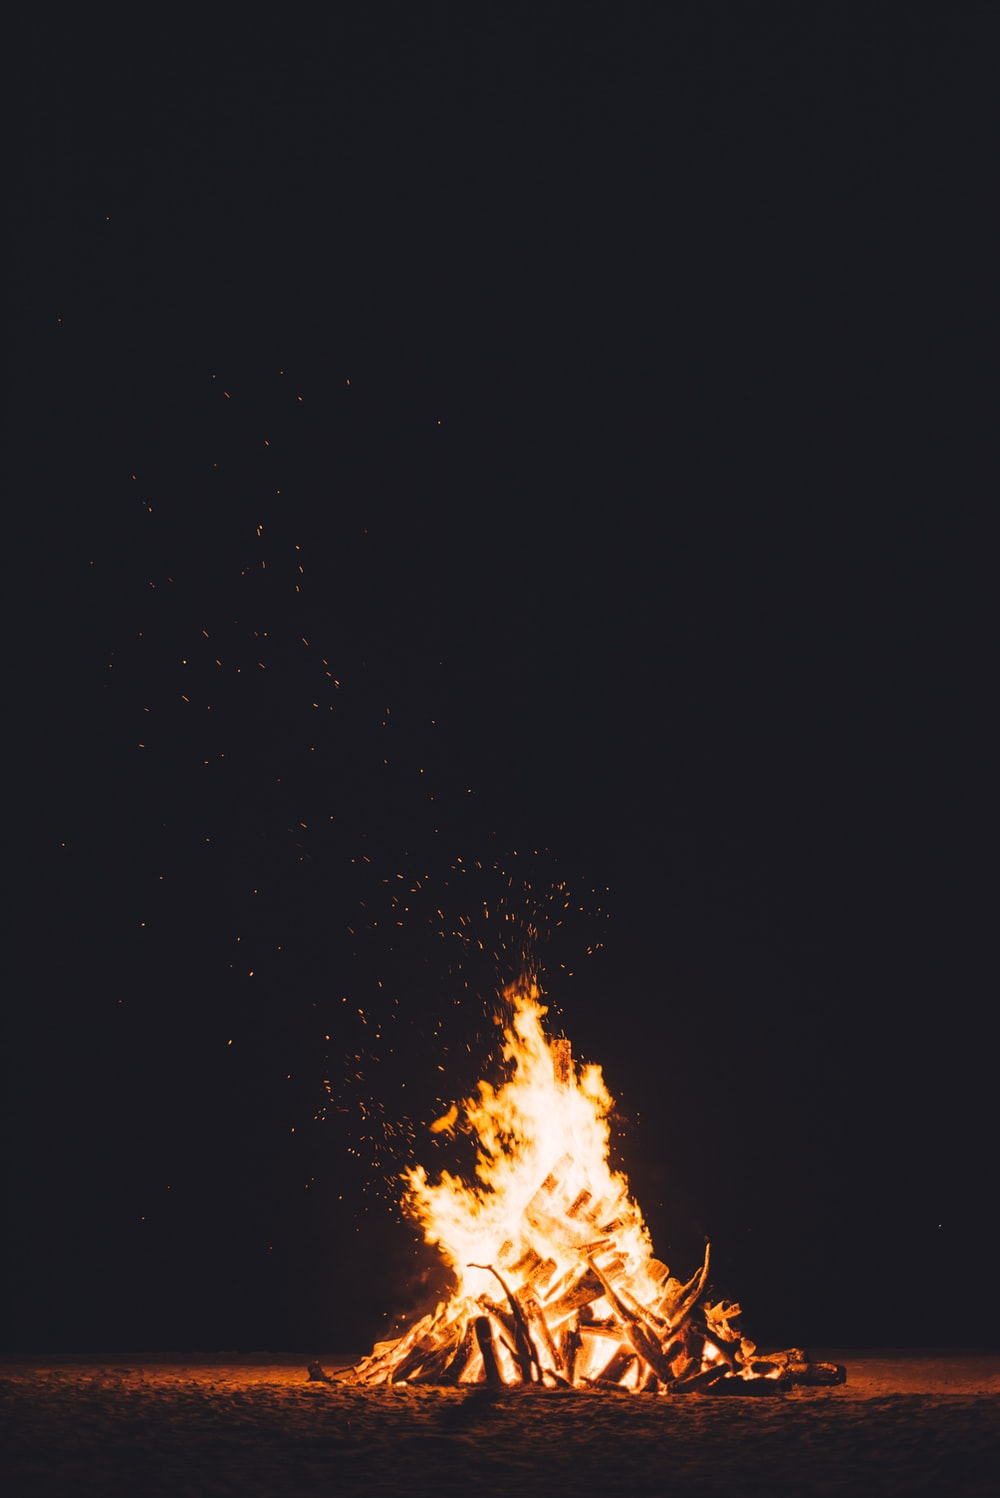 best 20 campfire pictures download free images on unsplash